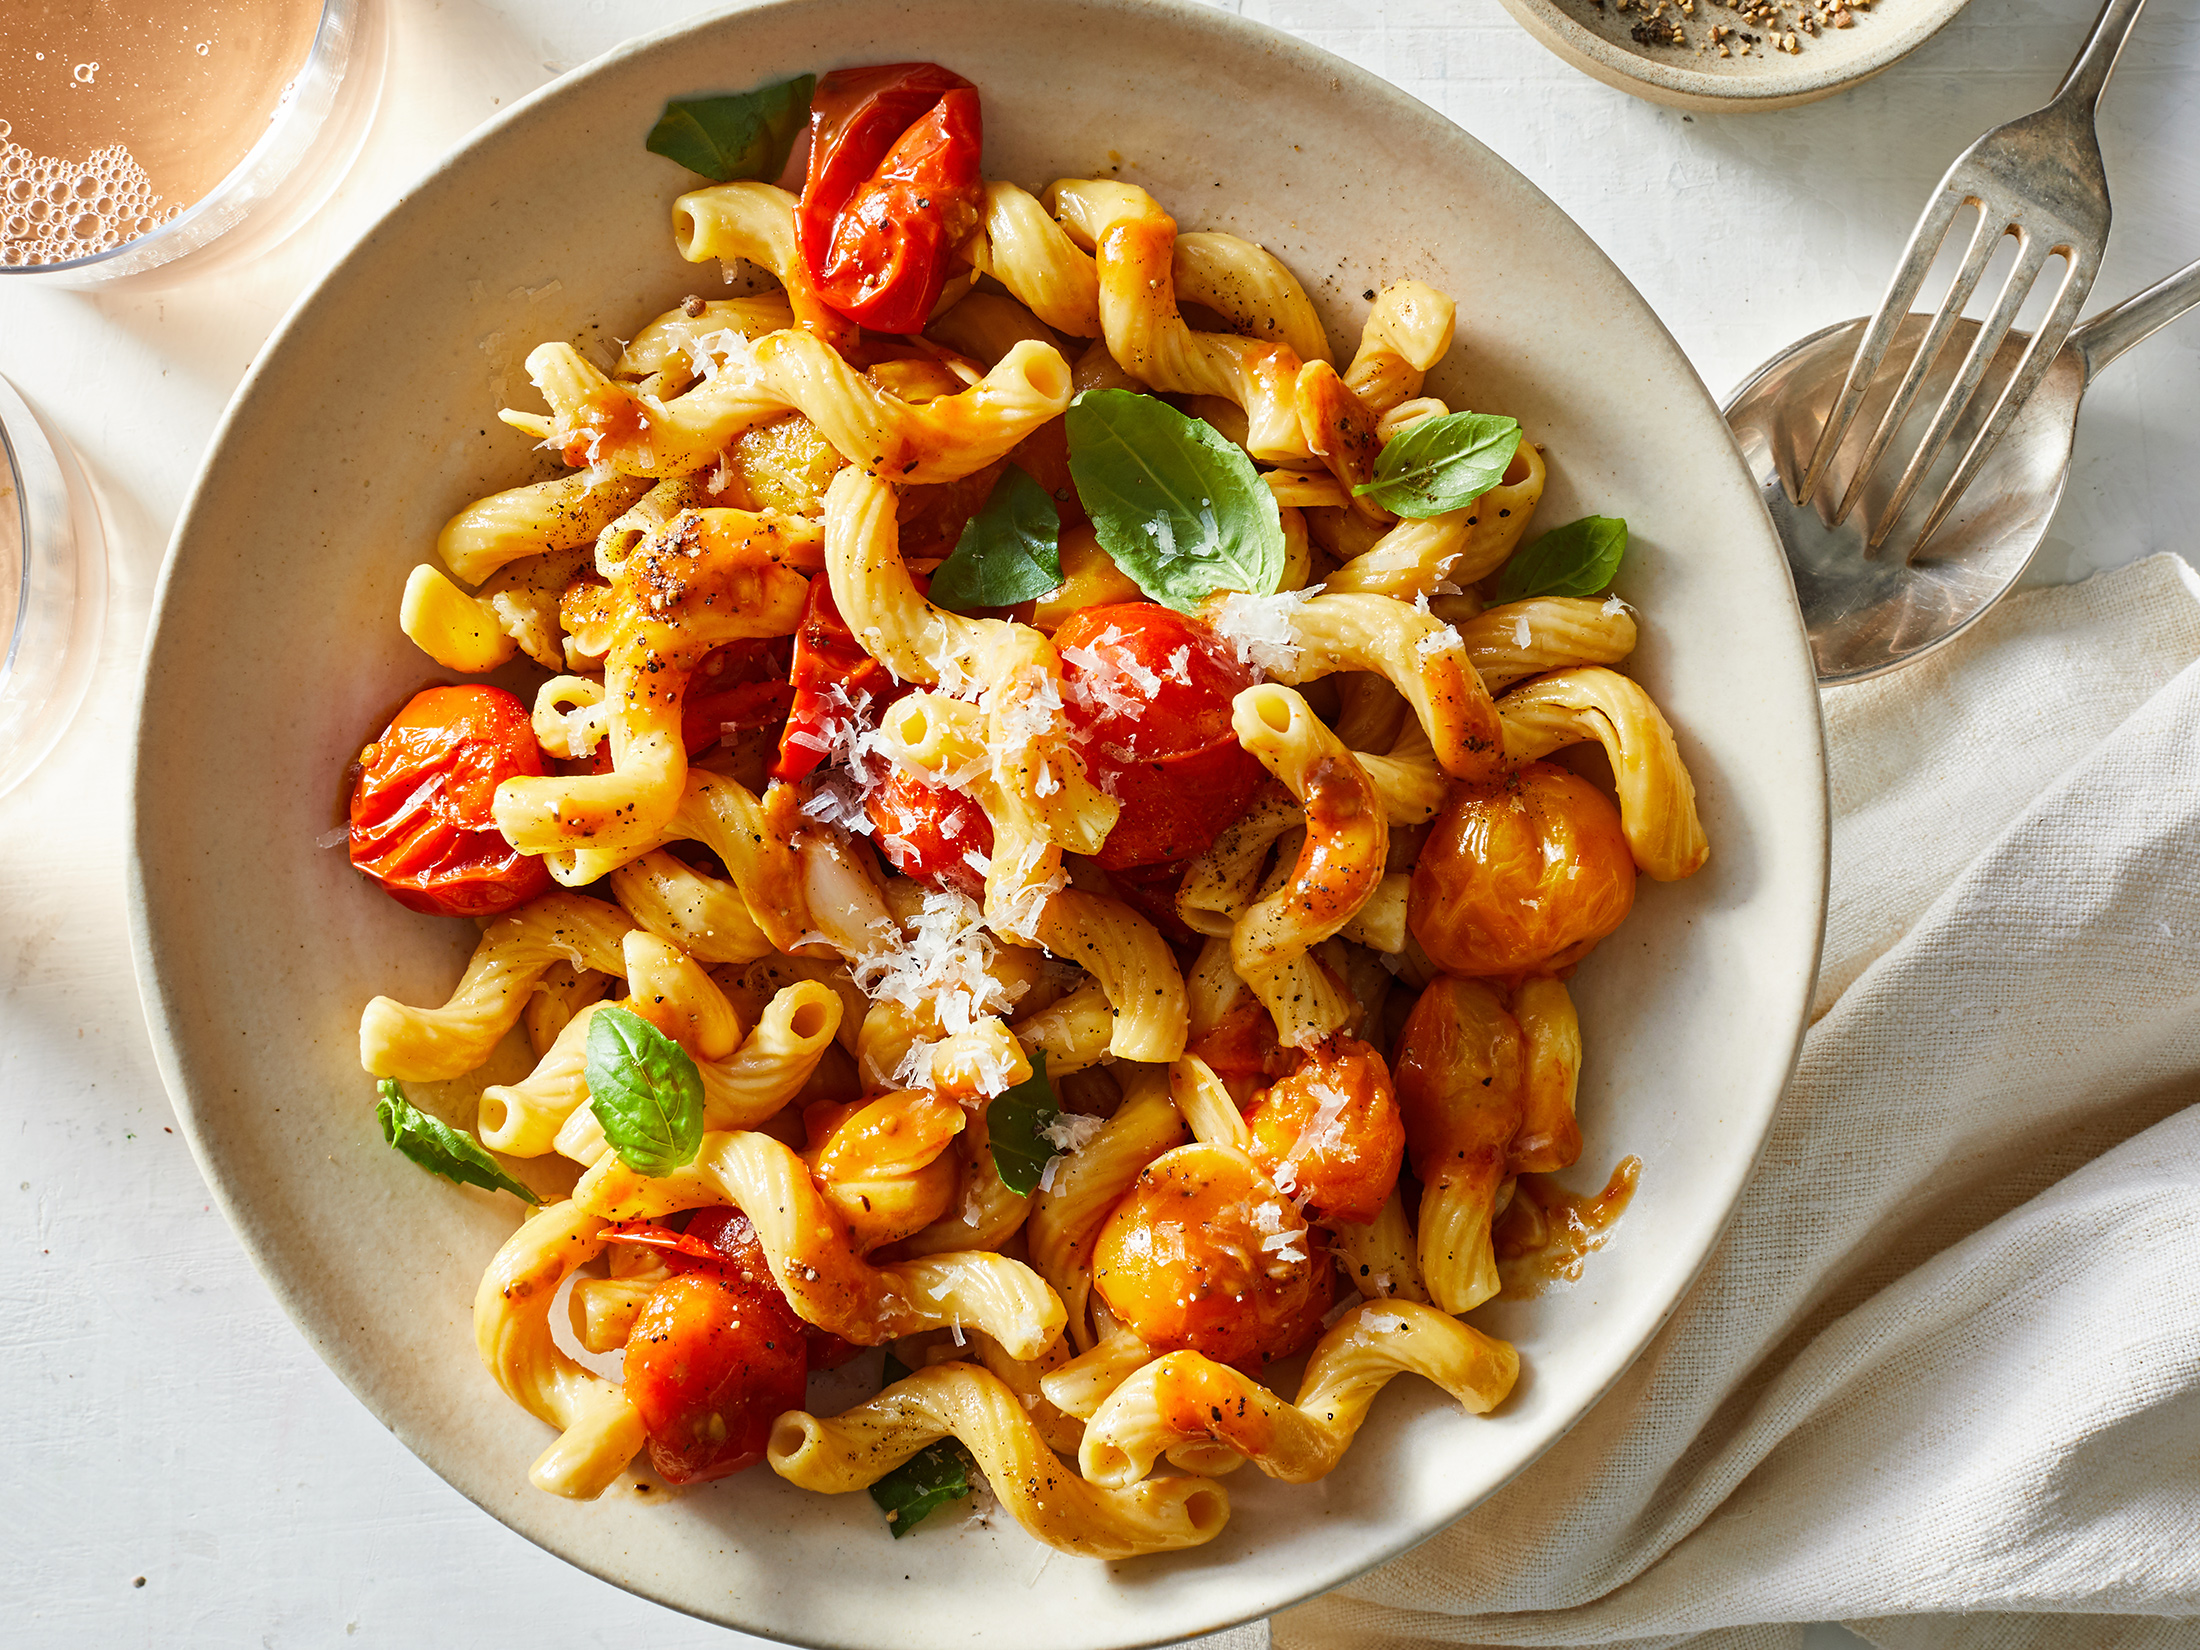 Pasta with Fresh Cherry Tomato, Garlic, and Basil Sauce